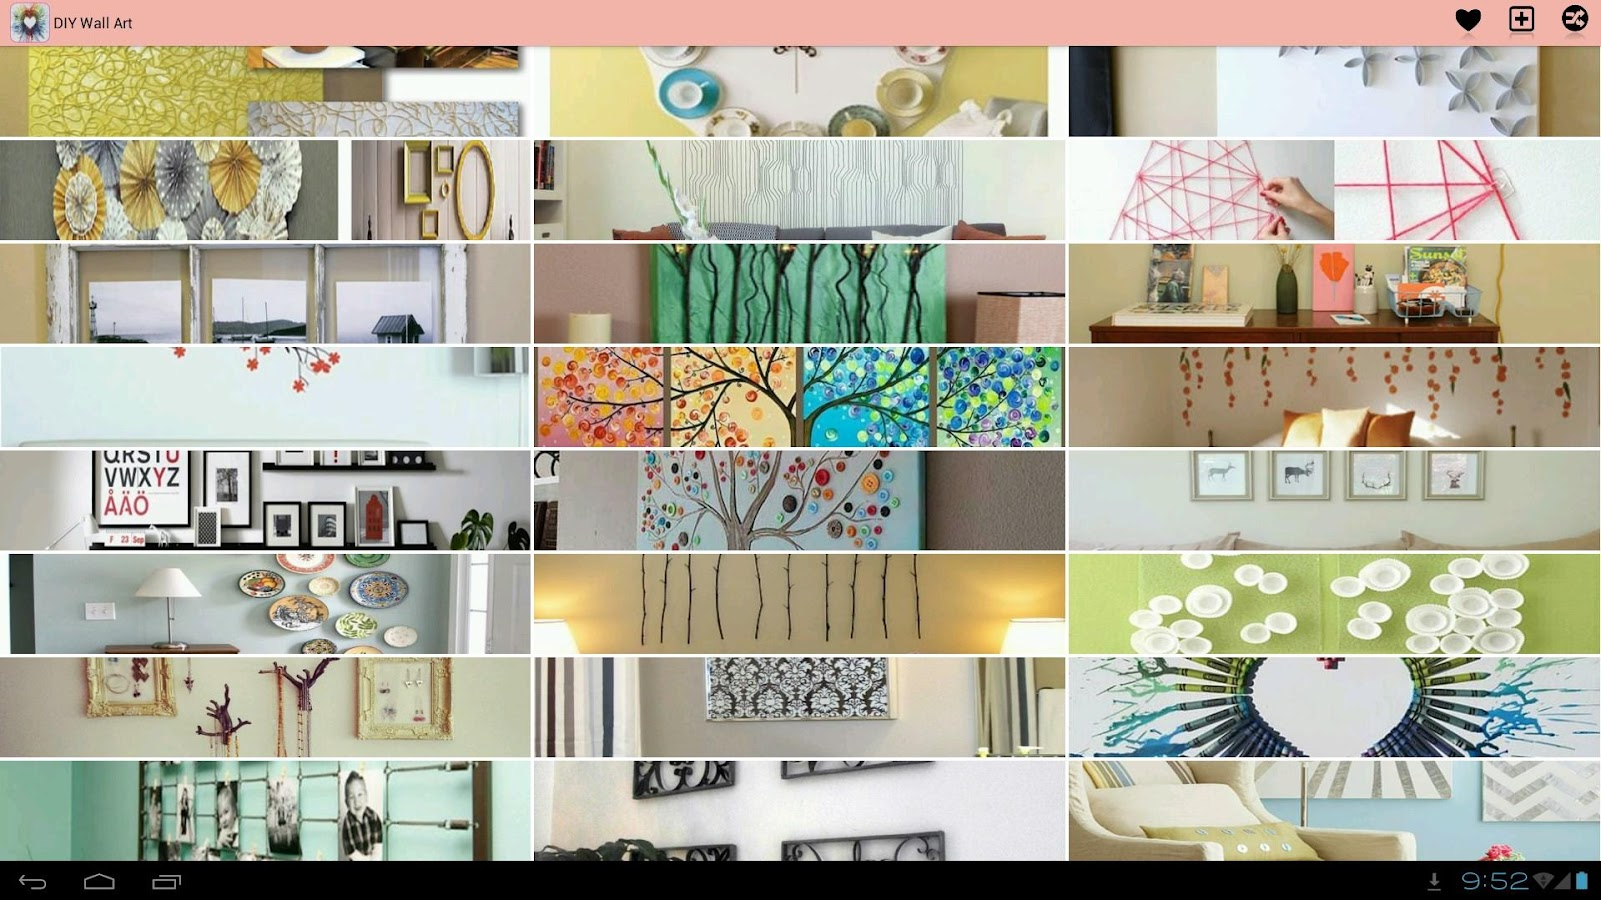 diy wall ideas ideas to decorate bedroom walls jumply co